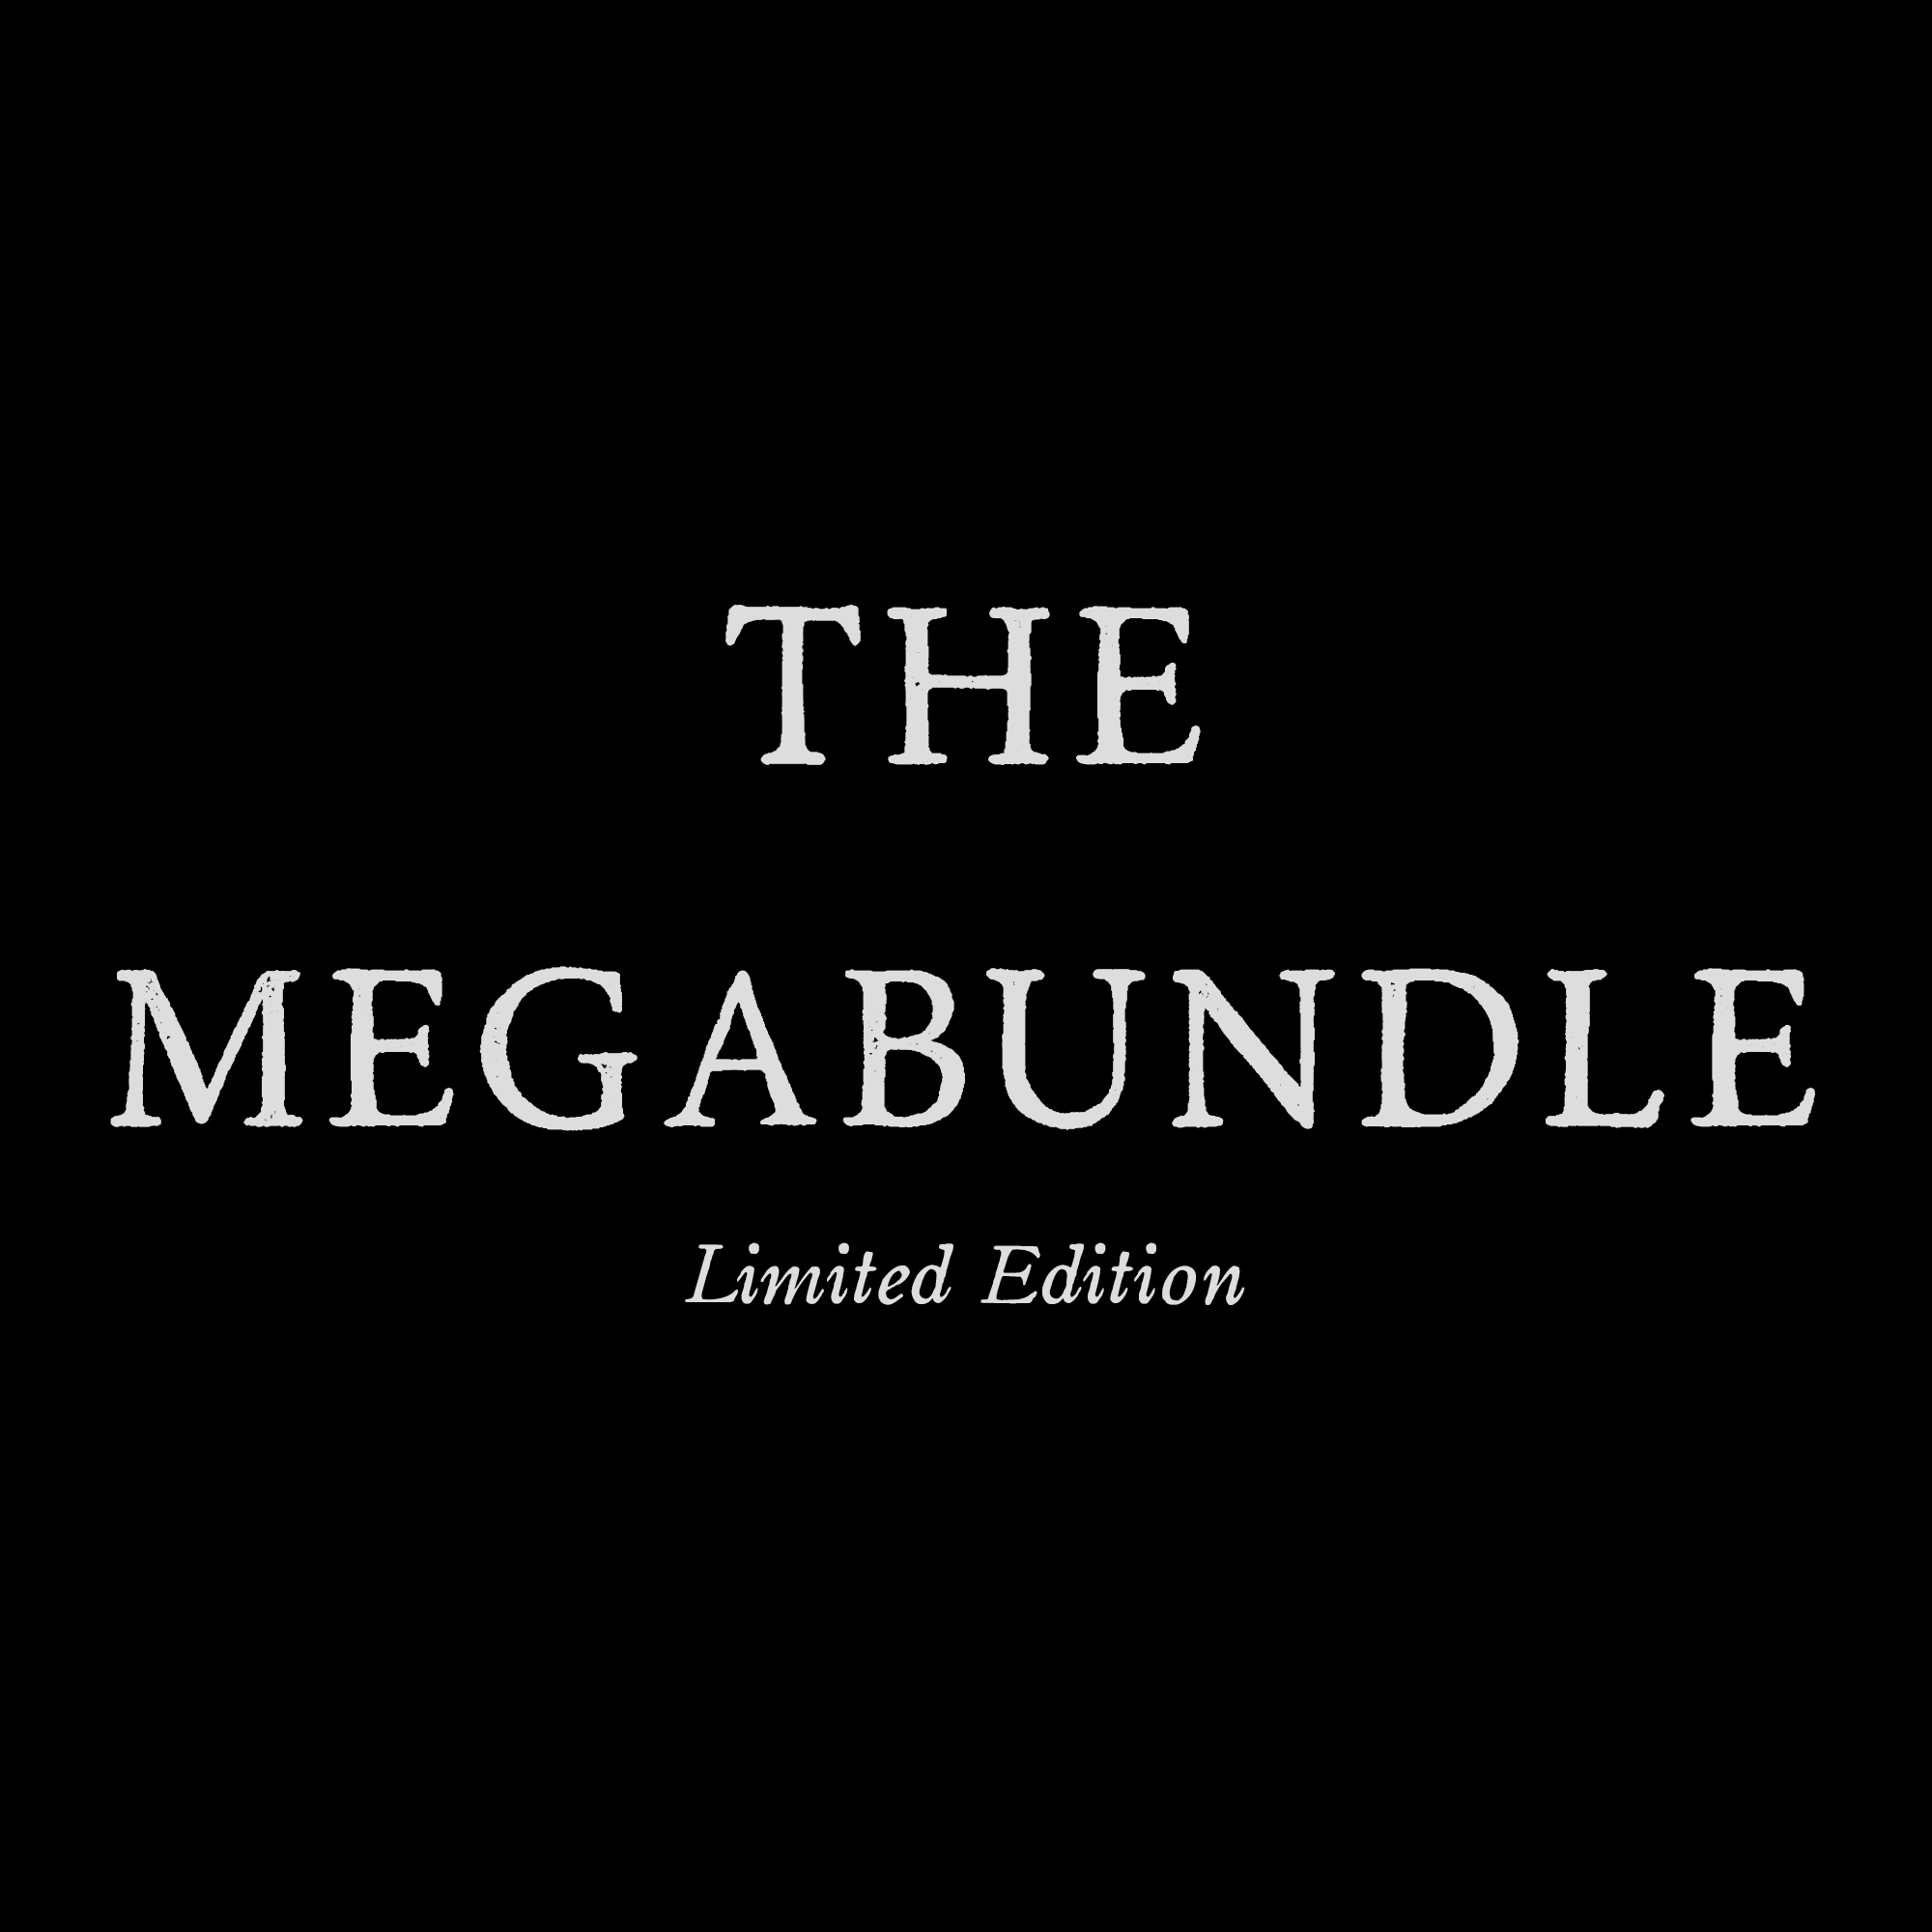 - For a limited time, purchase the all-new MEGABUNDLE to receive an early-release download of Aela's new single, Heaven (madkeim Remix). Shop now while supplies last.